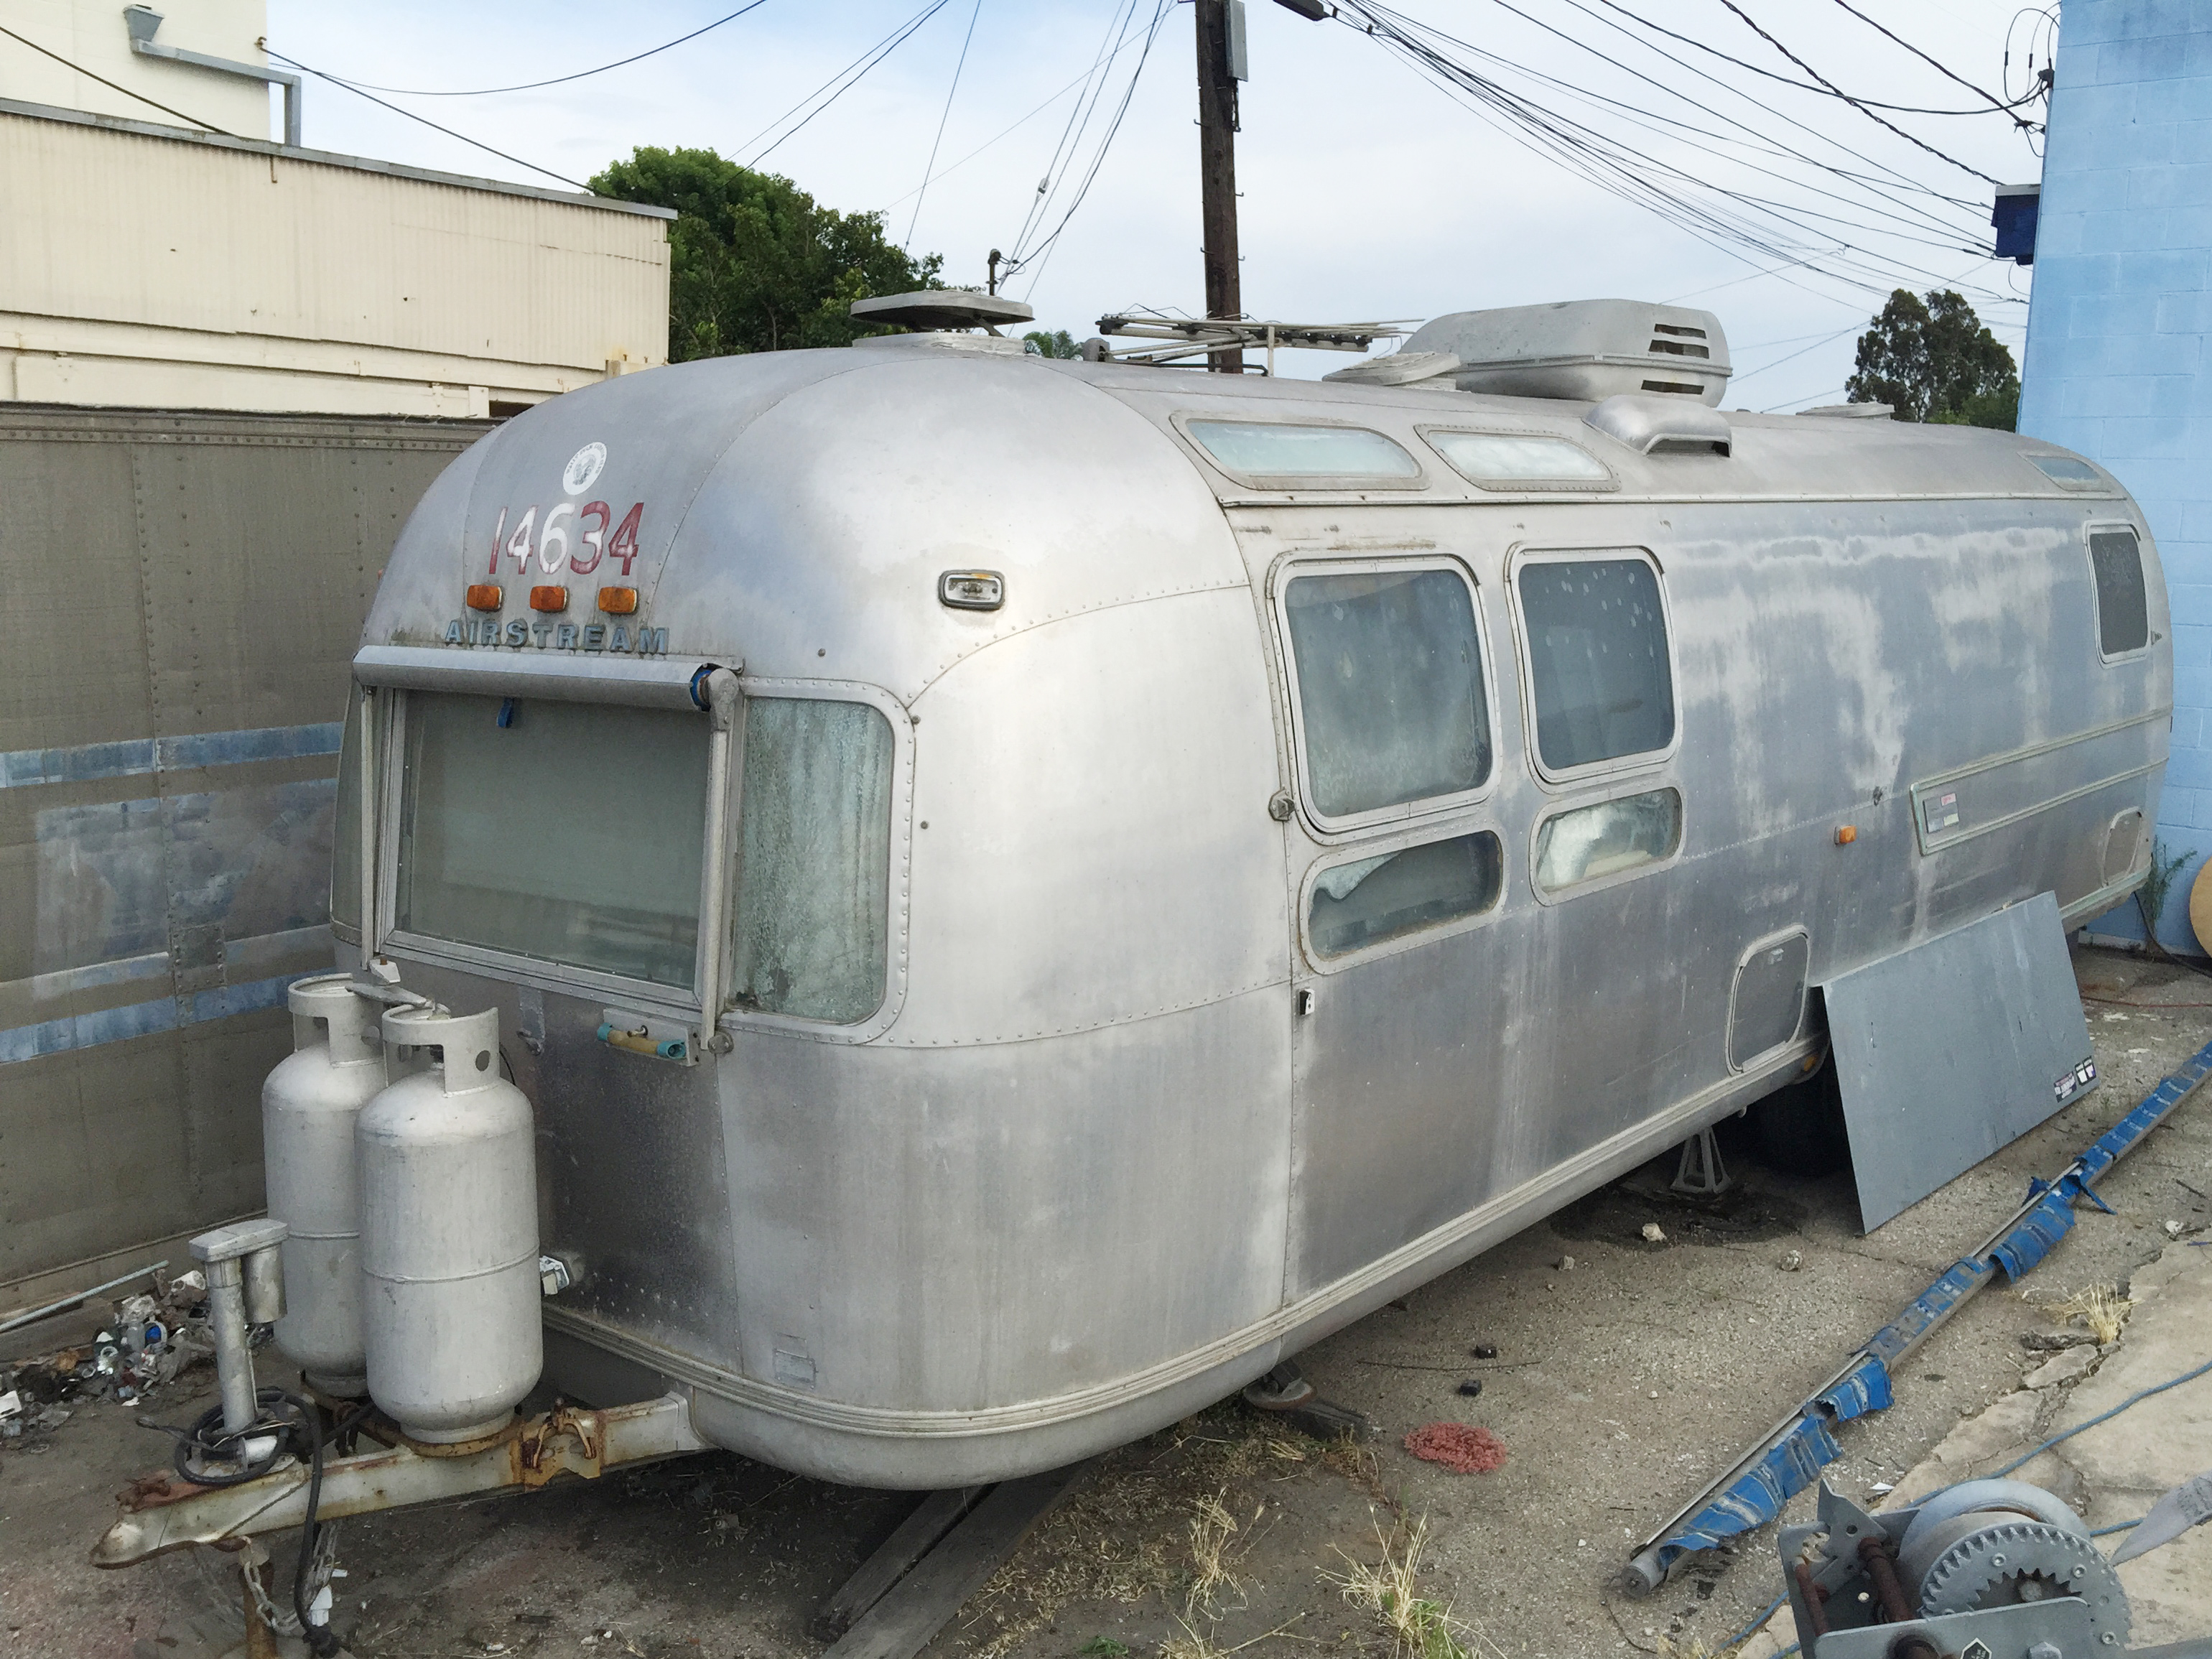 1976 Land Yacht Sovereign Airstream Renovation in Orange County, California.